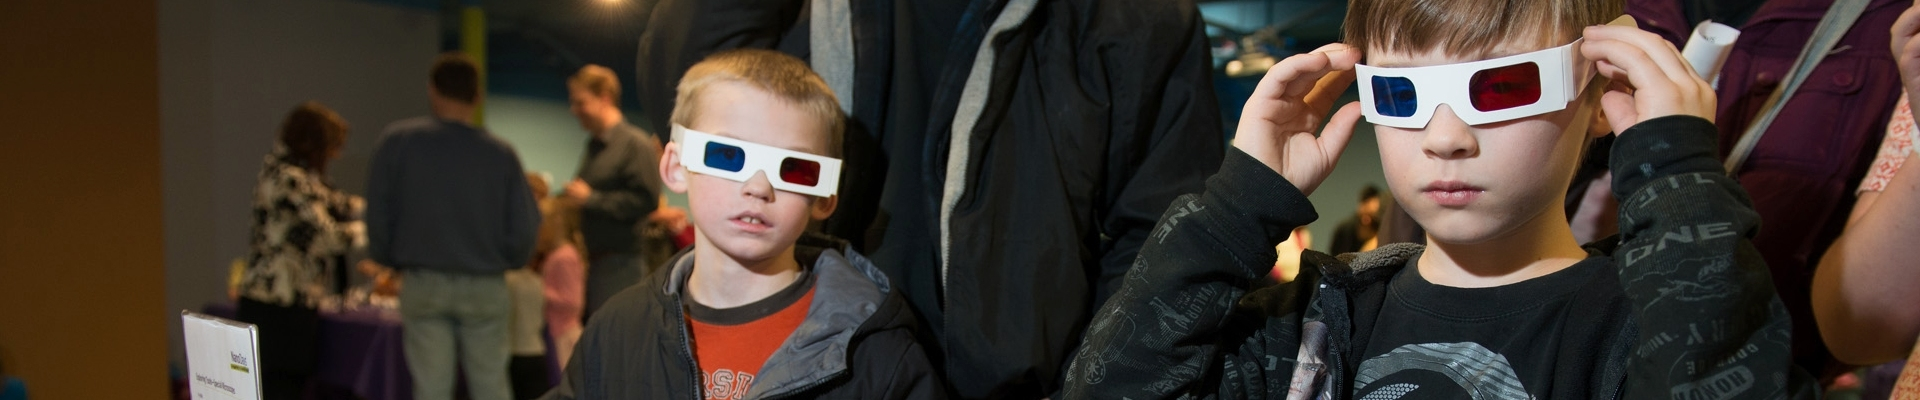 Children with 3D glasses